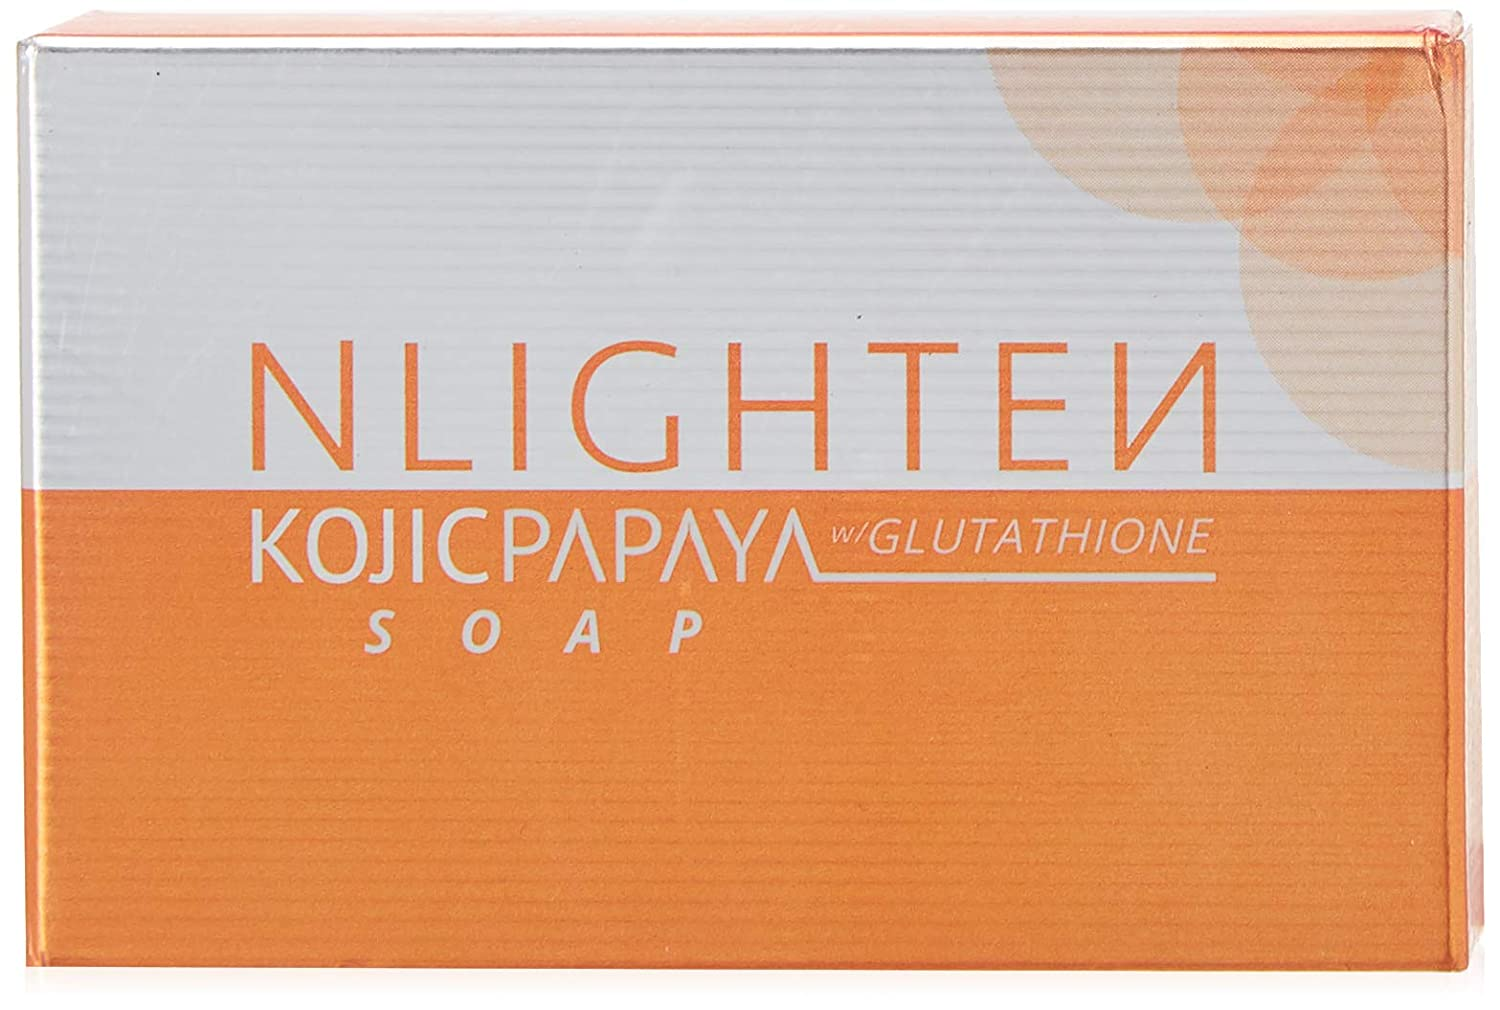 Amazon.com: Nlighten Kojic Papaya - Figura decorativa con ...